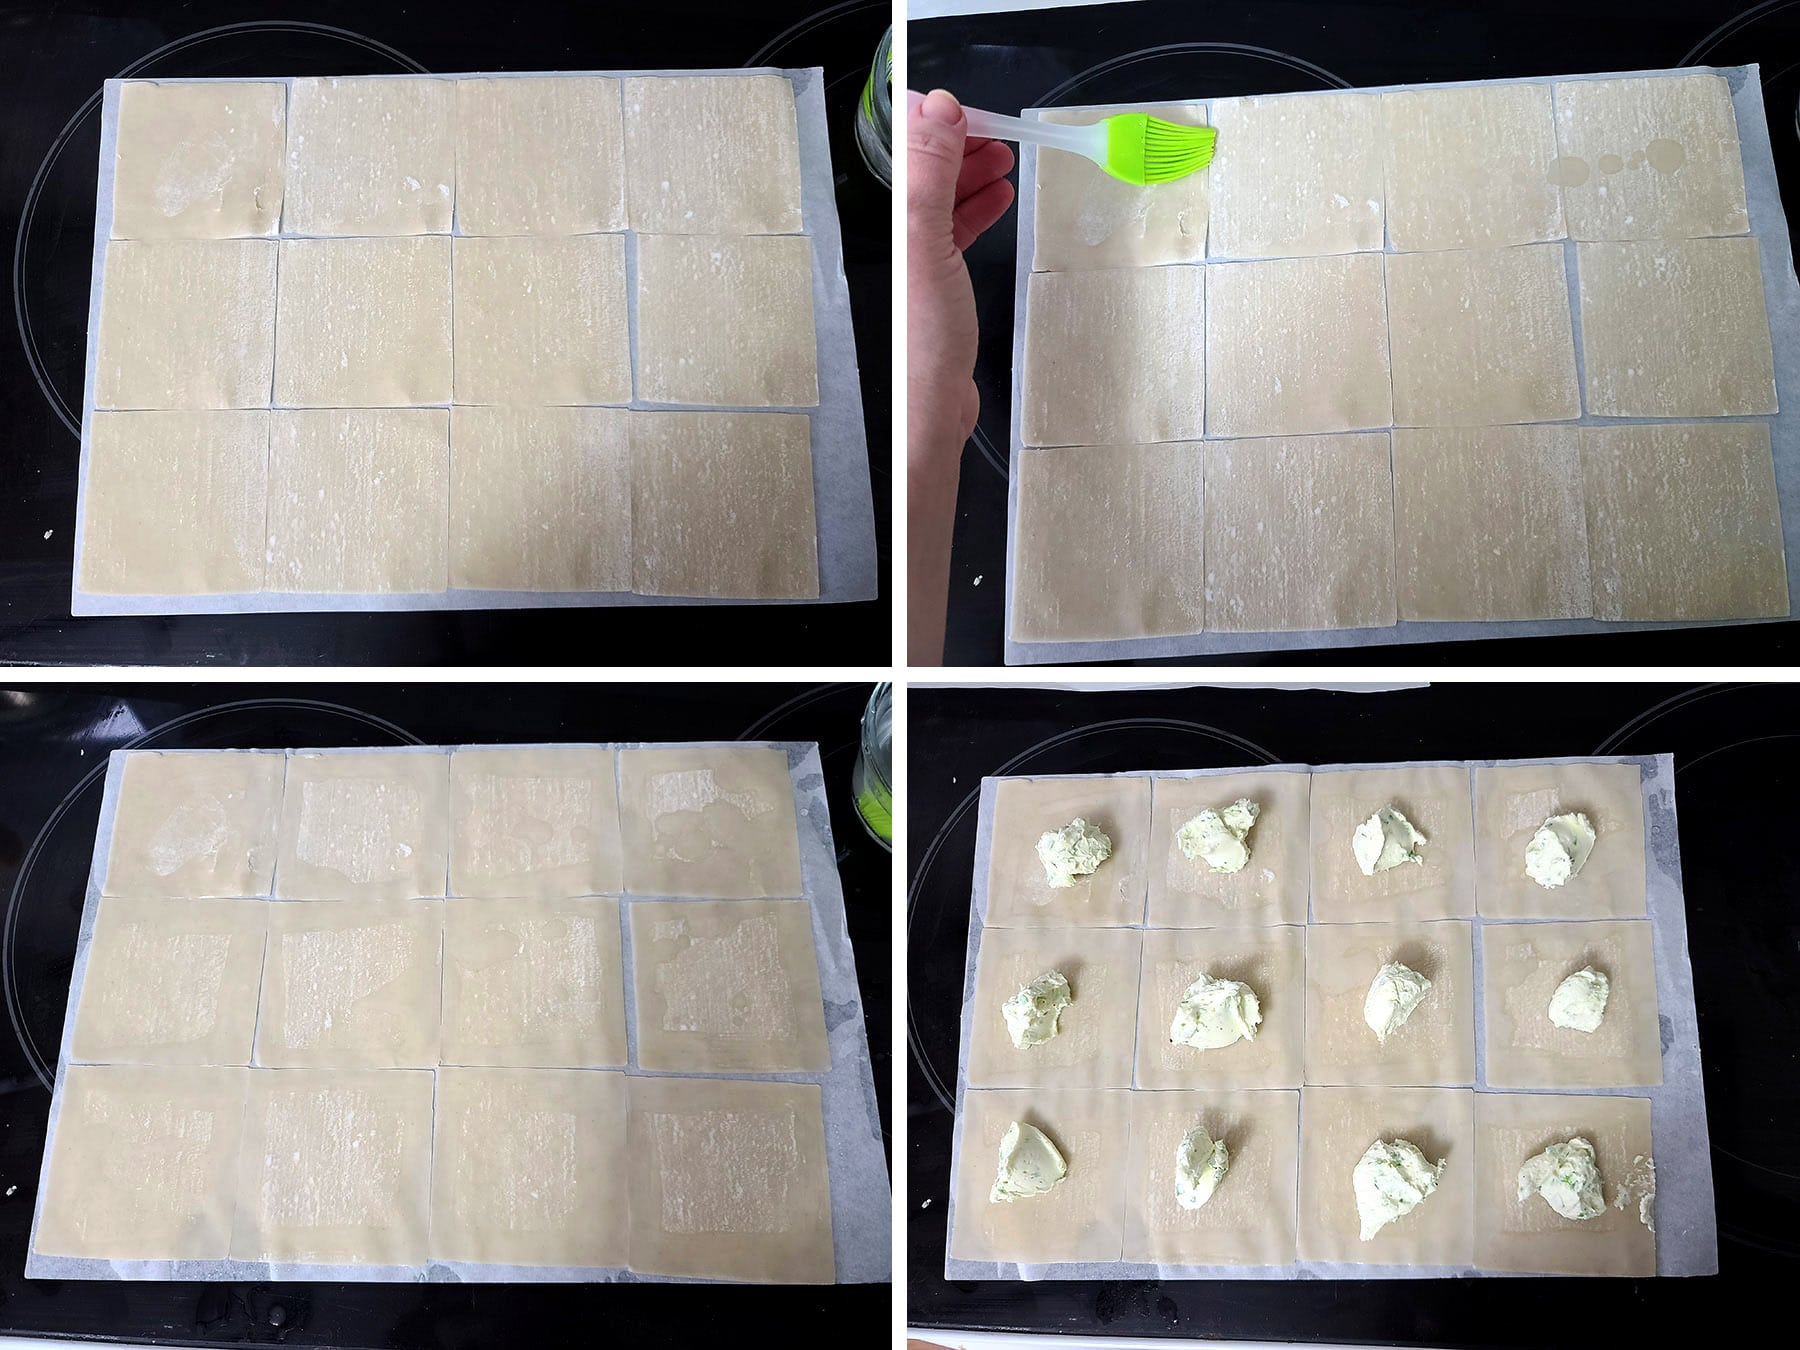 A 4 part image showing water being brushed on 12 wonton wrappers, then cheese added to the middle of each.